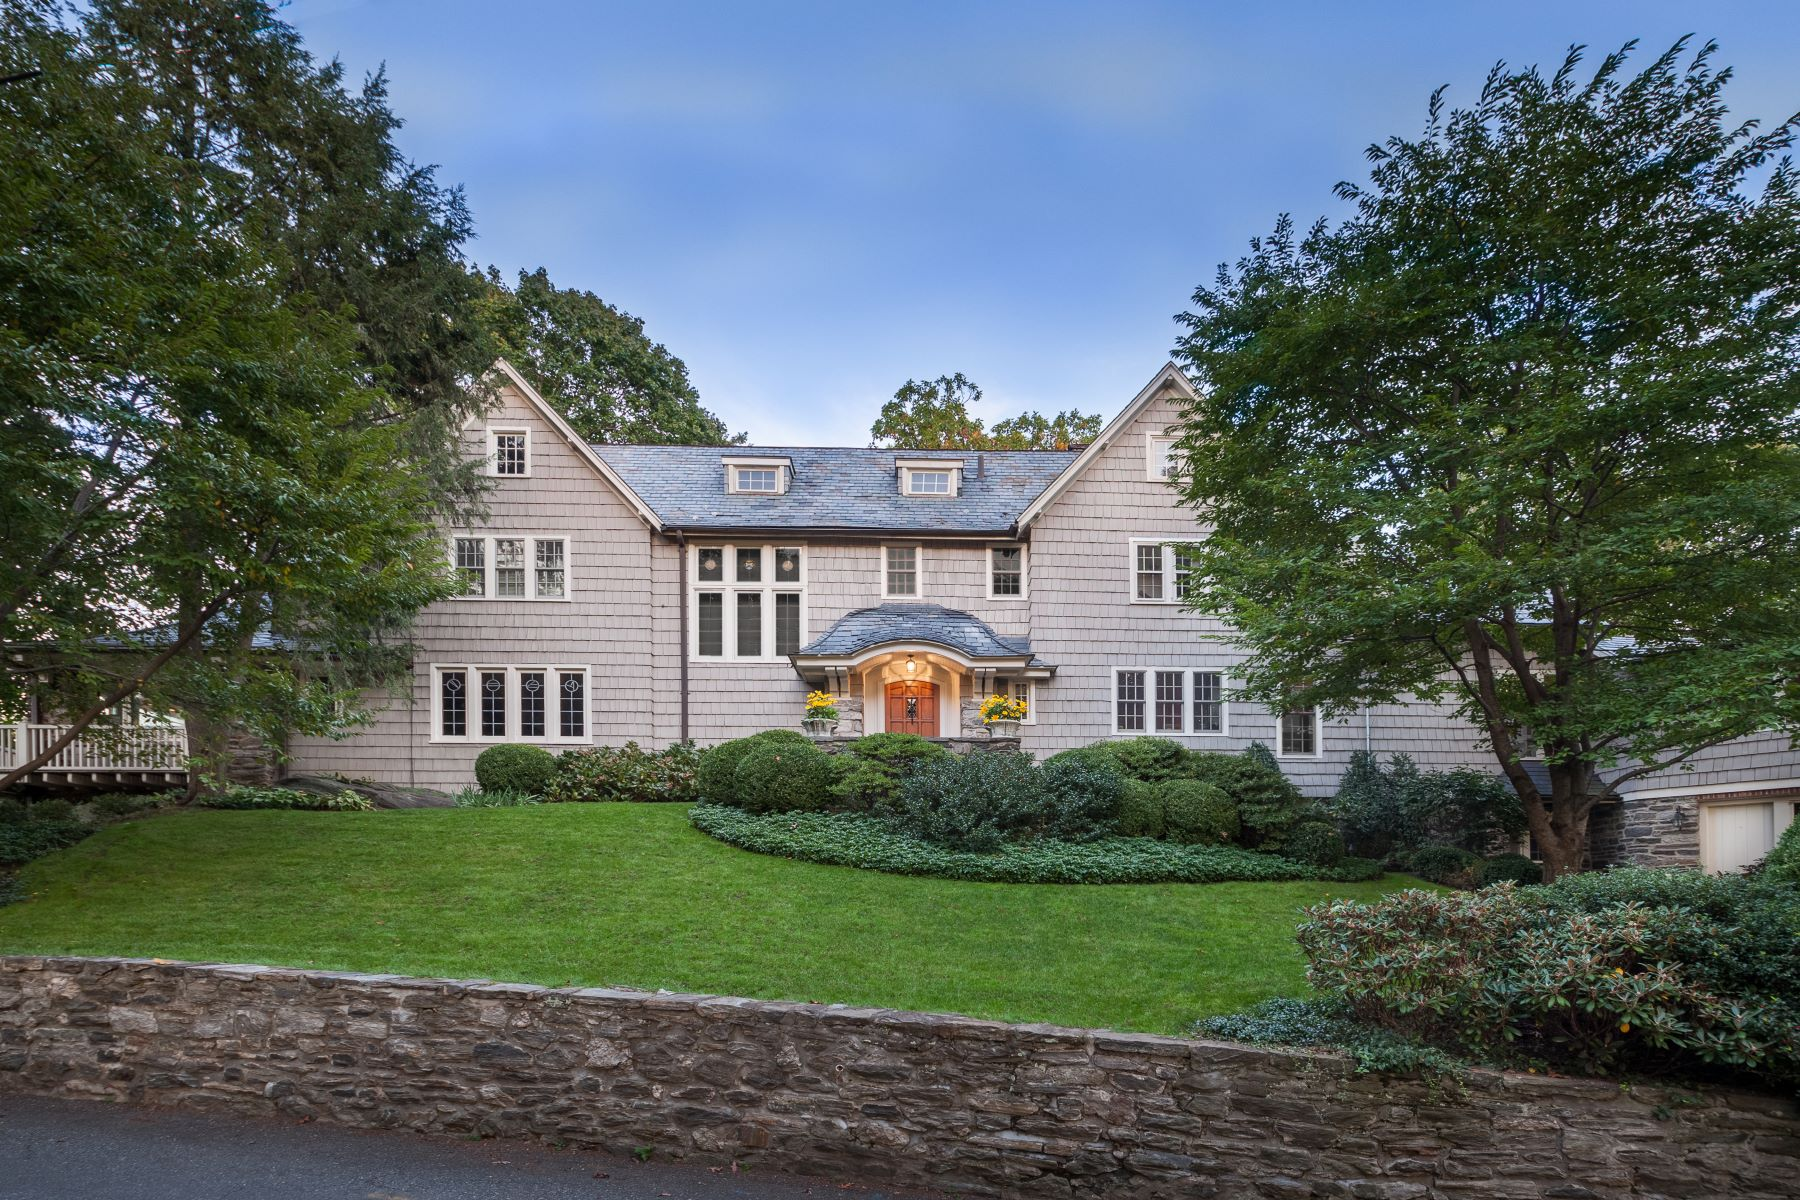 Maison unifamiliale pour l Vente à The Quintessential Hilltop House 6 Northern Avenue Bronxville, New York 10708 États-Unis